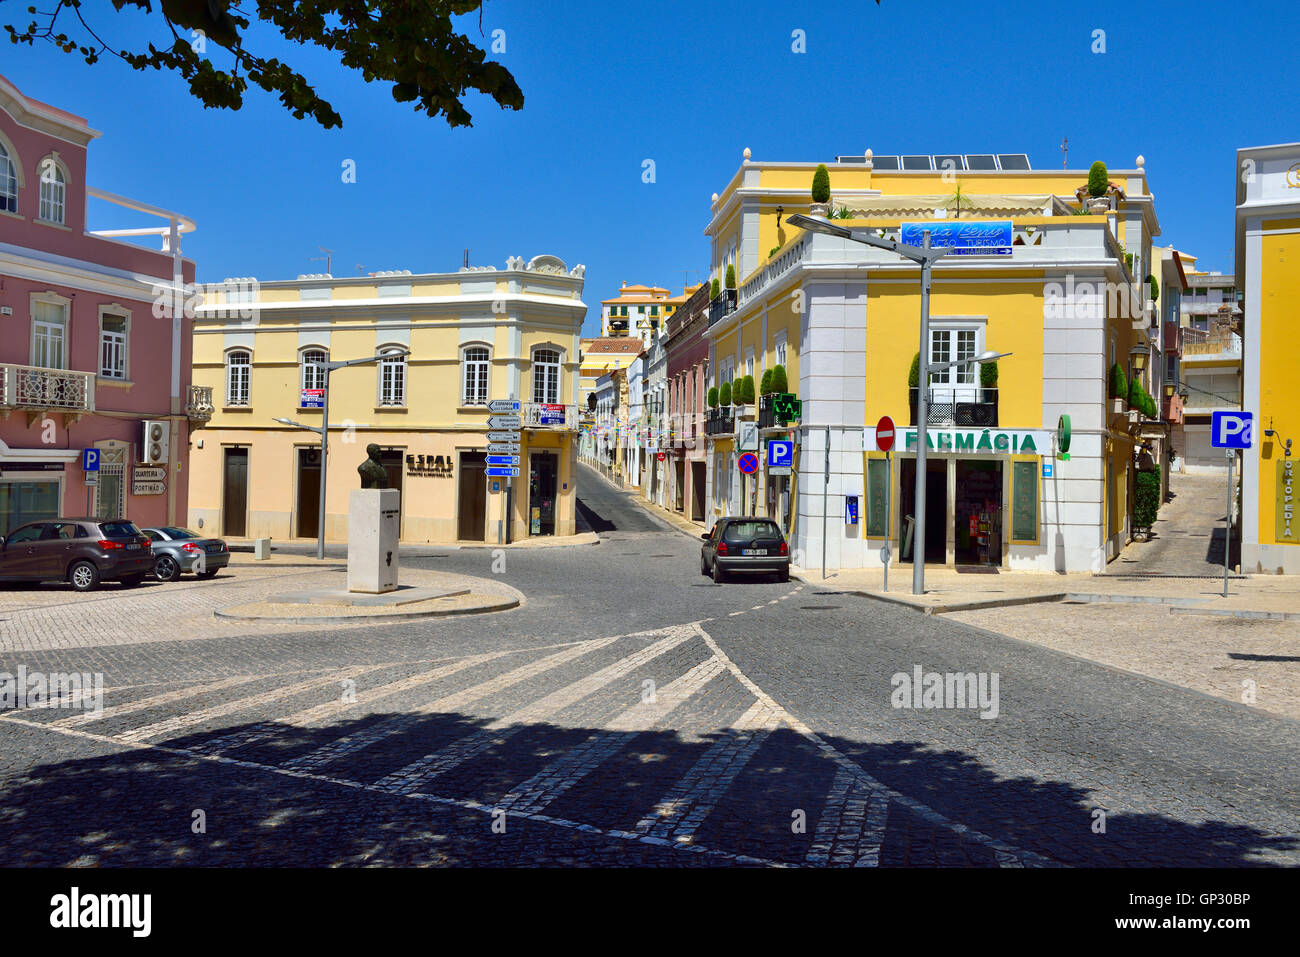 Inland town of Loulé with narrow streets, one on right leading up to castle, Algarve, south Portugal. By Jardim - Stock Image